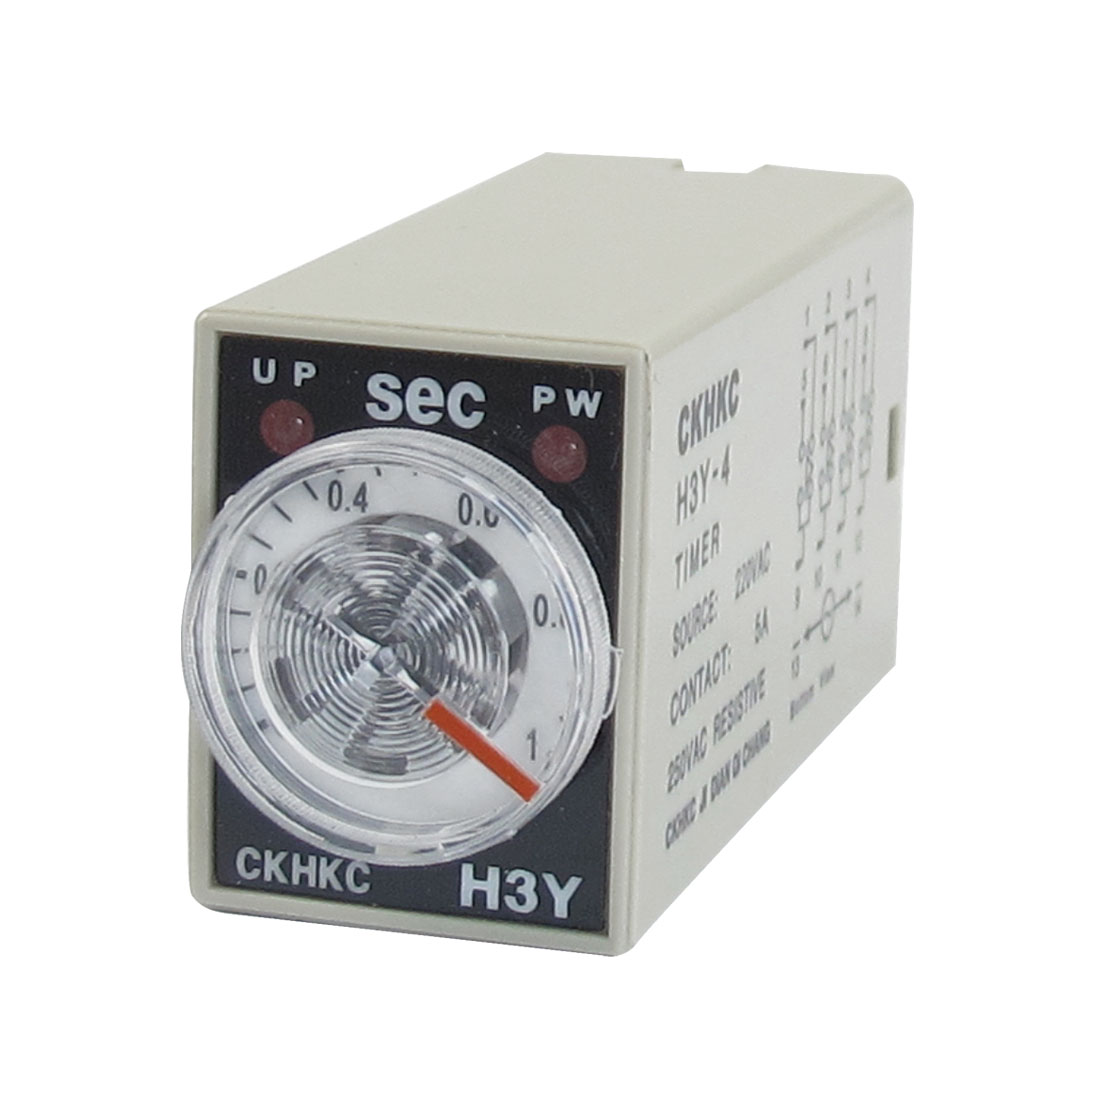 H3Y-4 AC 220V 4PDT 0-1 Seconds 1S 14 Pins Power on Time Delay Relay